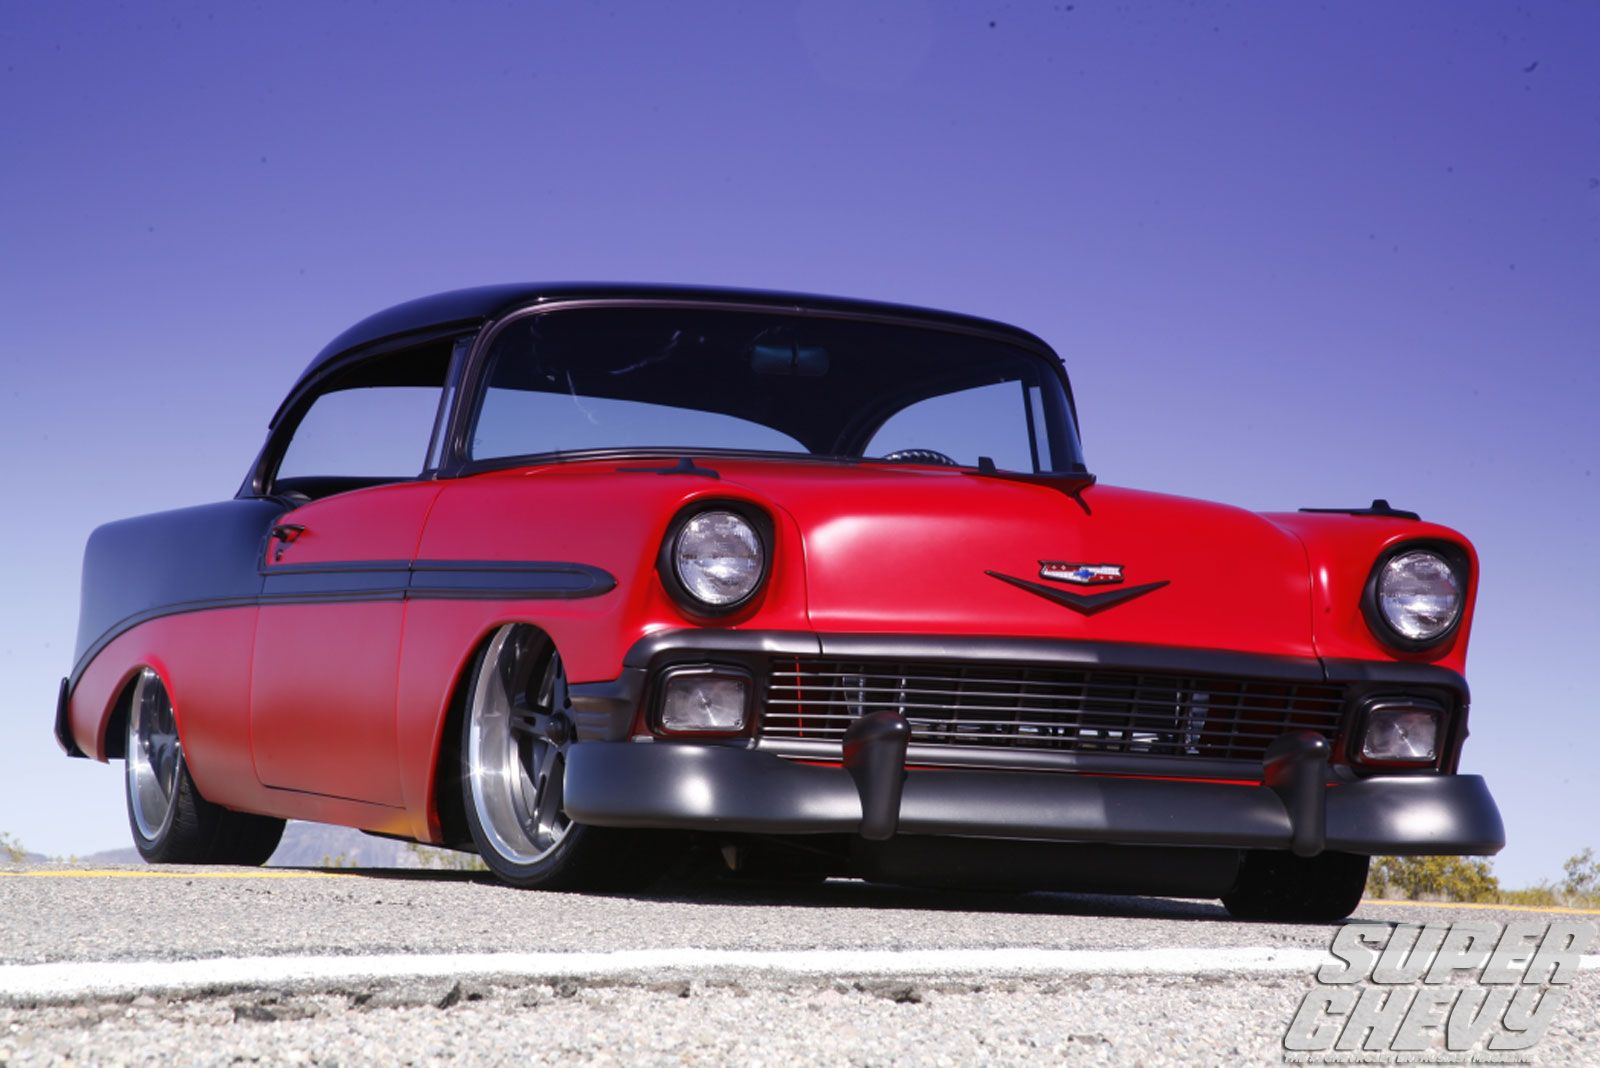 Red And Black 56 Chevy Bel Air Chevy Hot Rods Cars Muscle